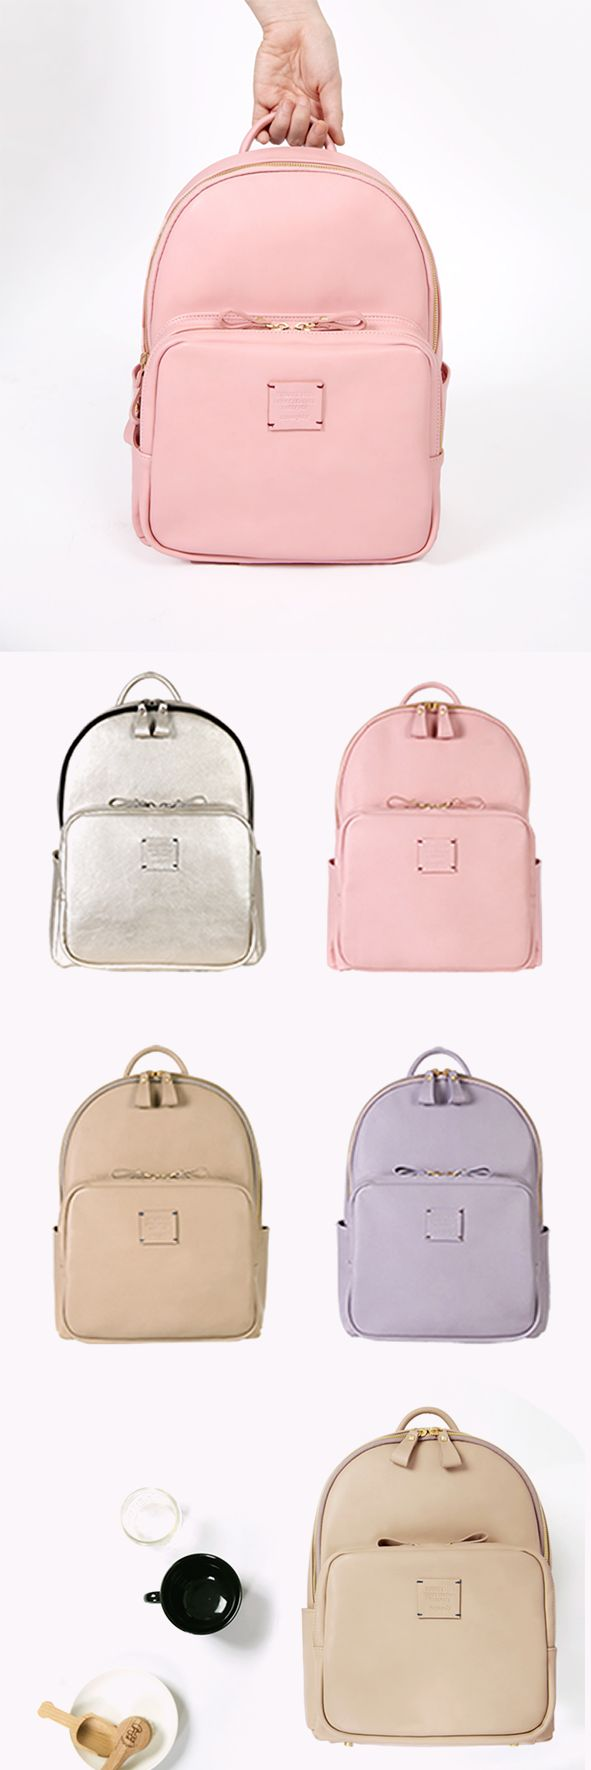 Mochila Backpack Back Pack Rosa Pink Plateada Lila Violeta Purple Marrón Nude Cuero